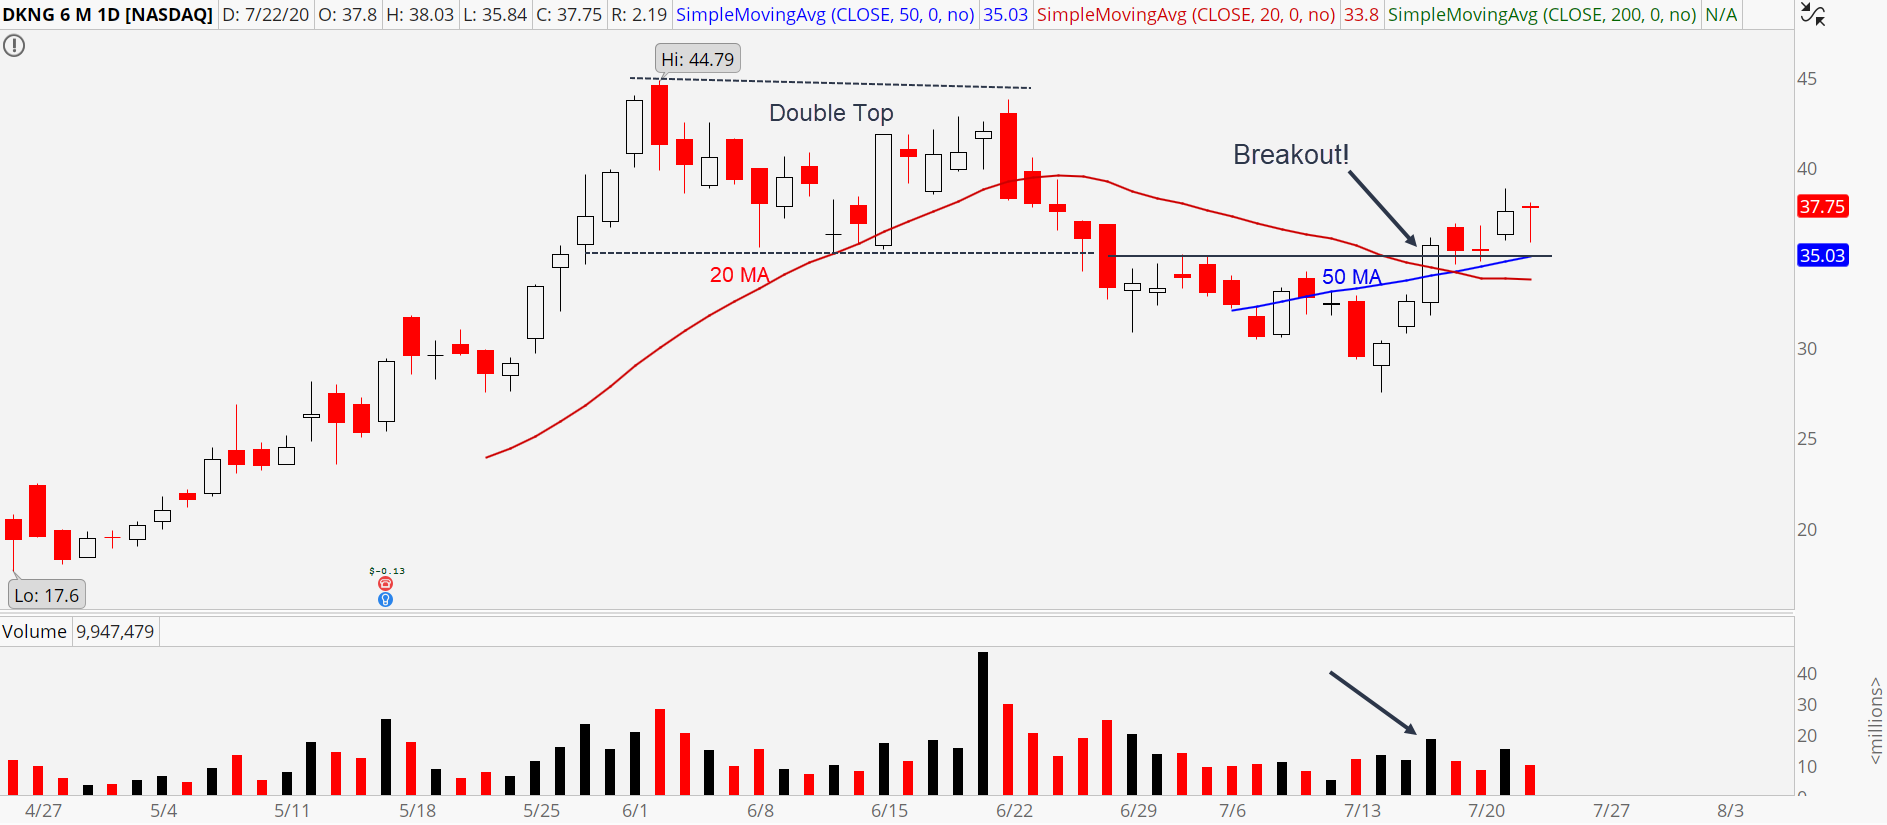 DraftKings (DKNG) chart showing recent upside breakout